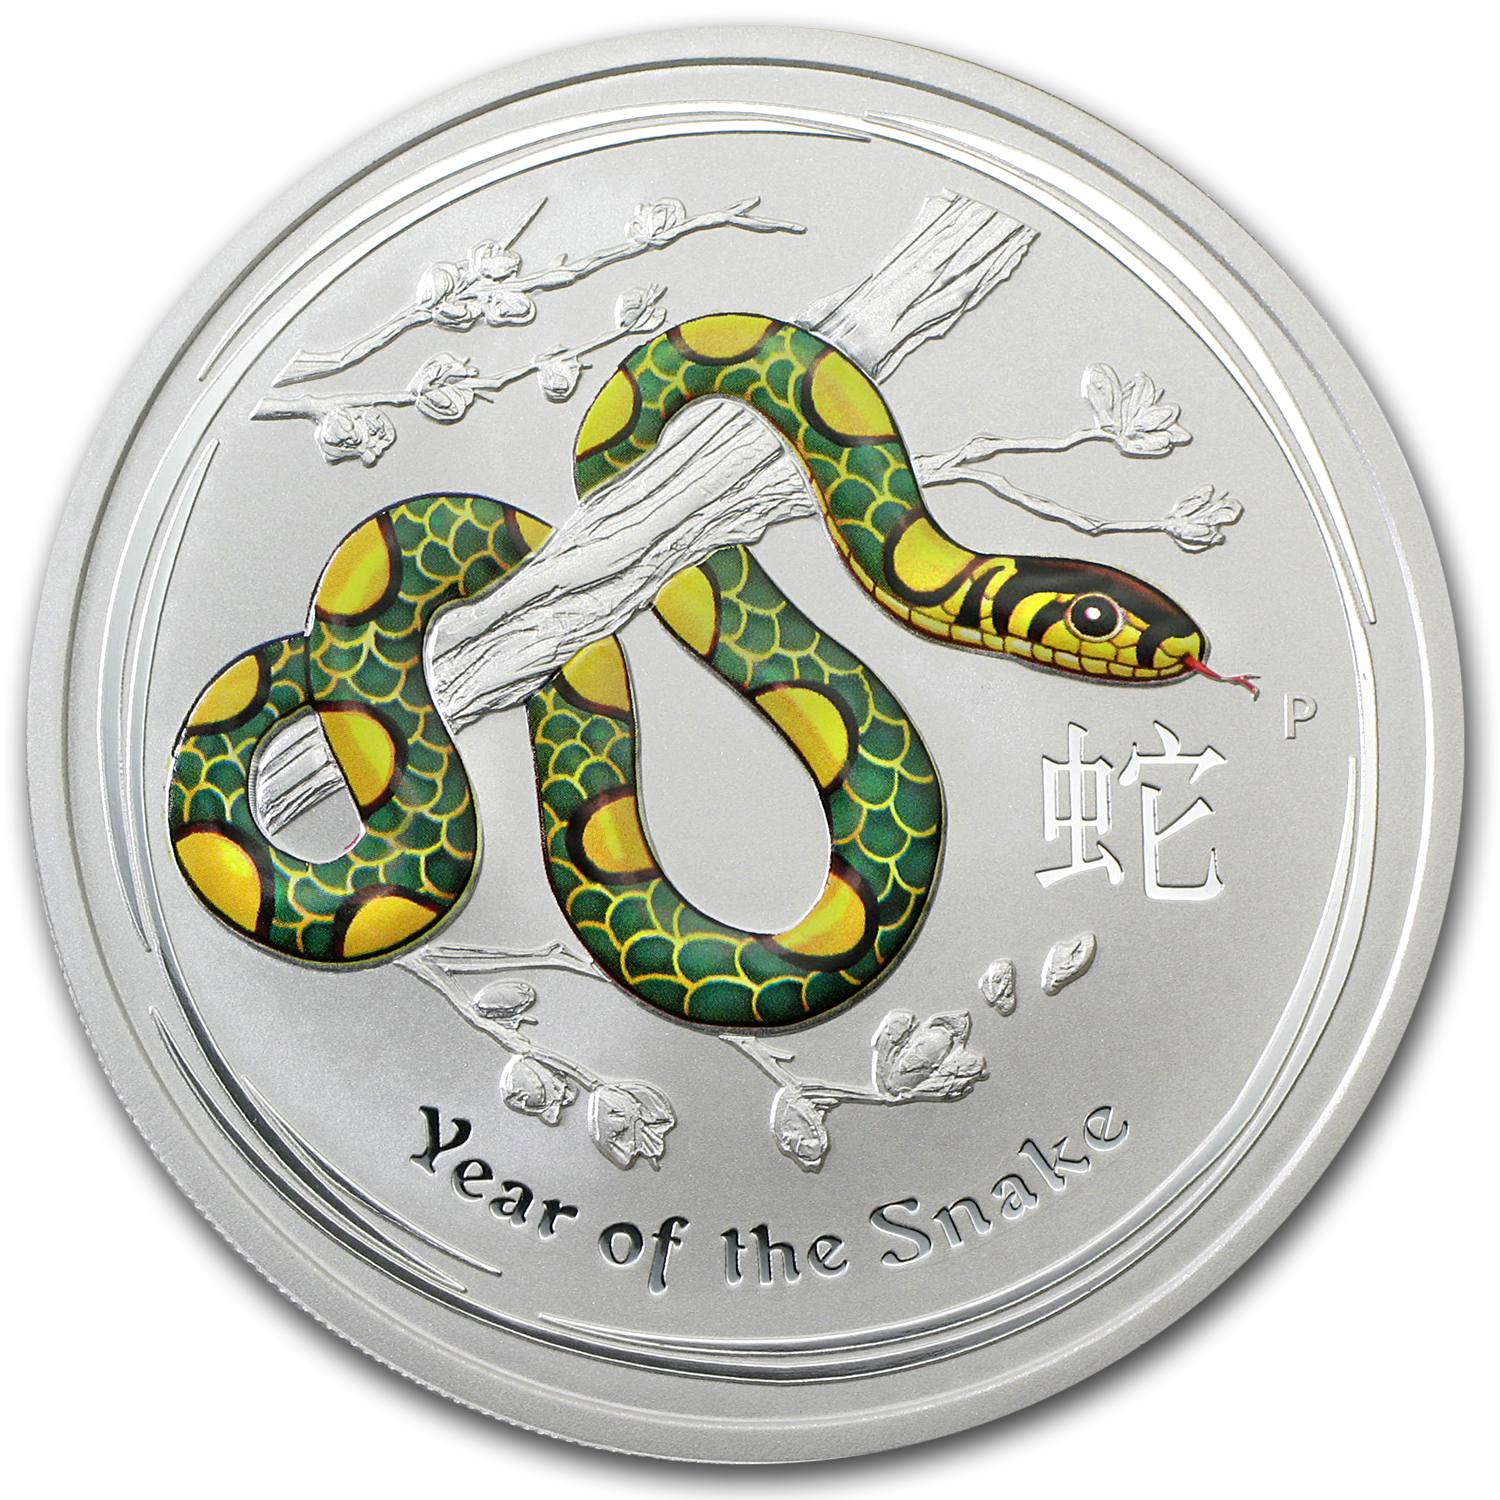 2013 5 oz Silver Australian Year of the Snake Colorized w/Red Box